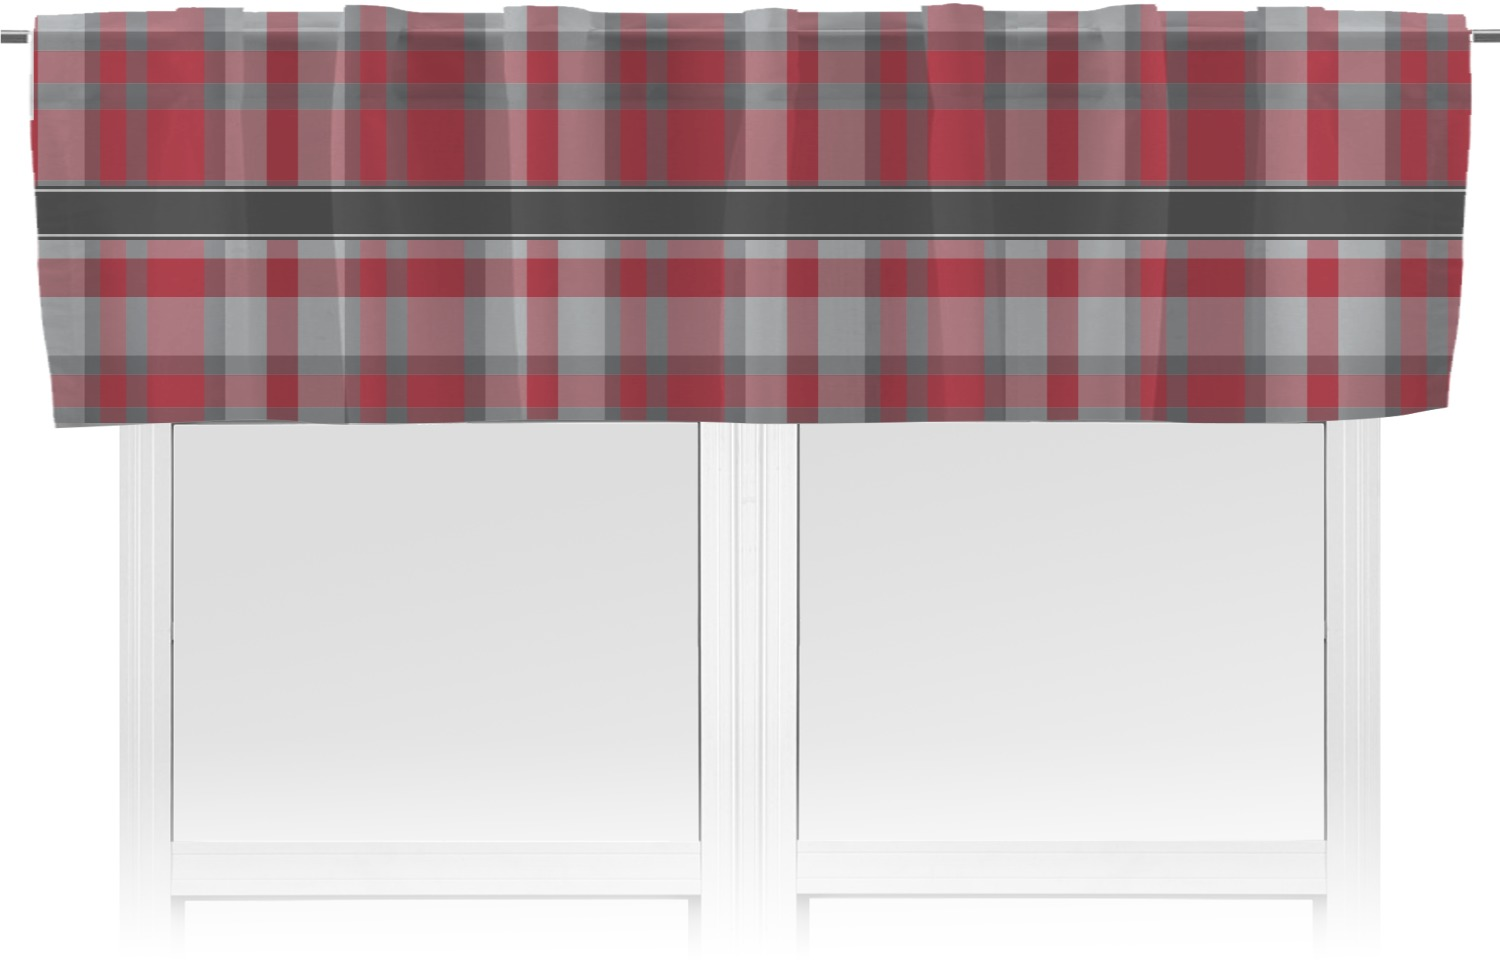 surprising Red And Grey Valance Part - 2: Red u0026 Gray Plaid Valance (Personalized)